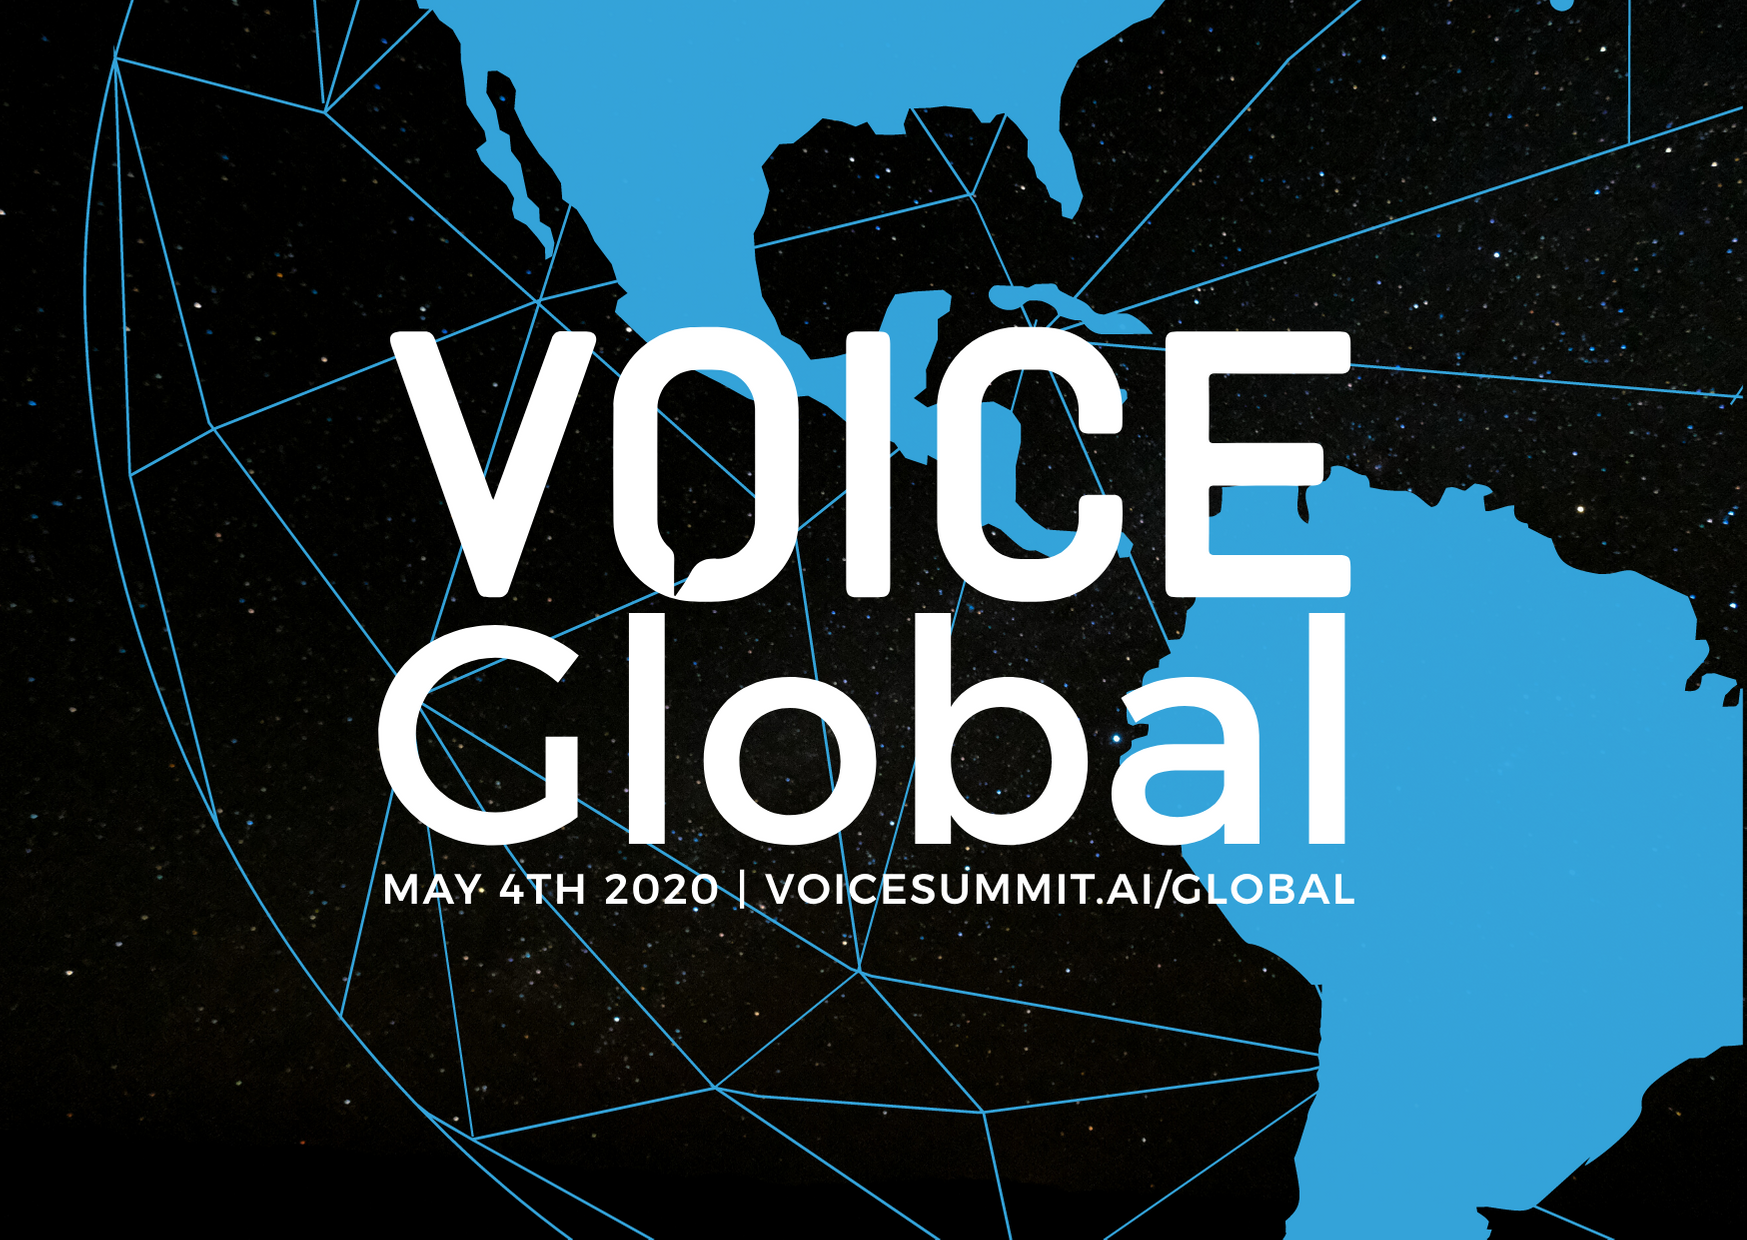 VOICE Global livestream